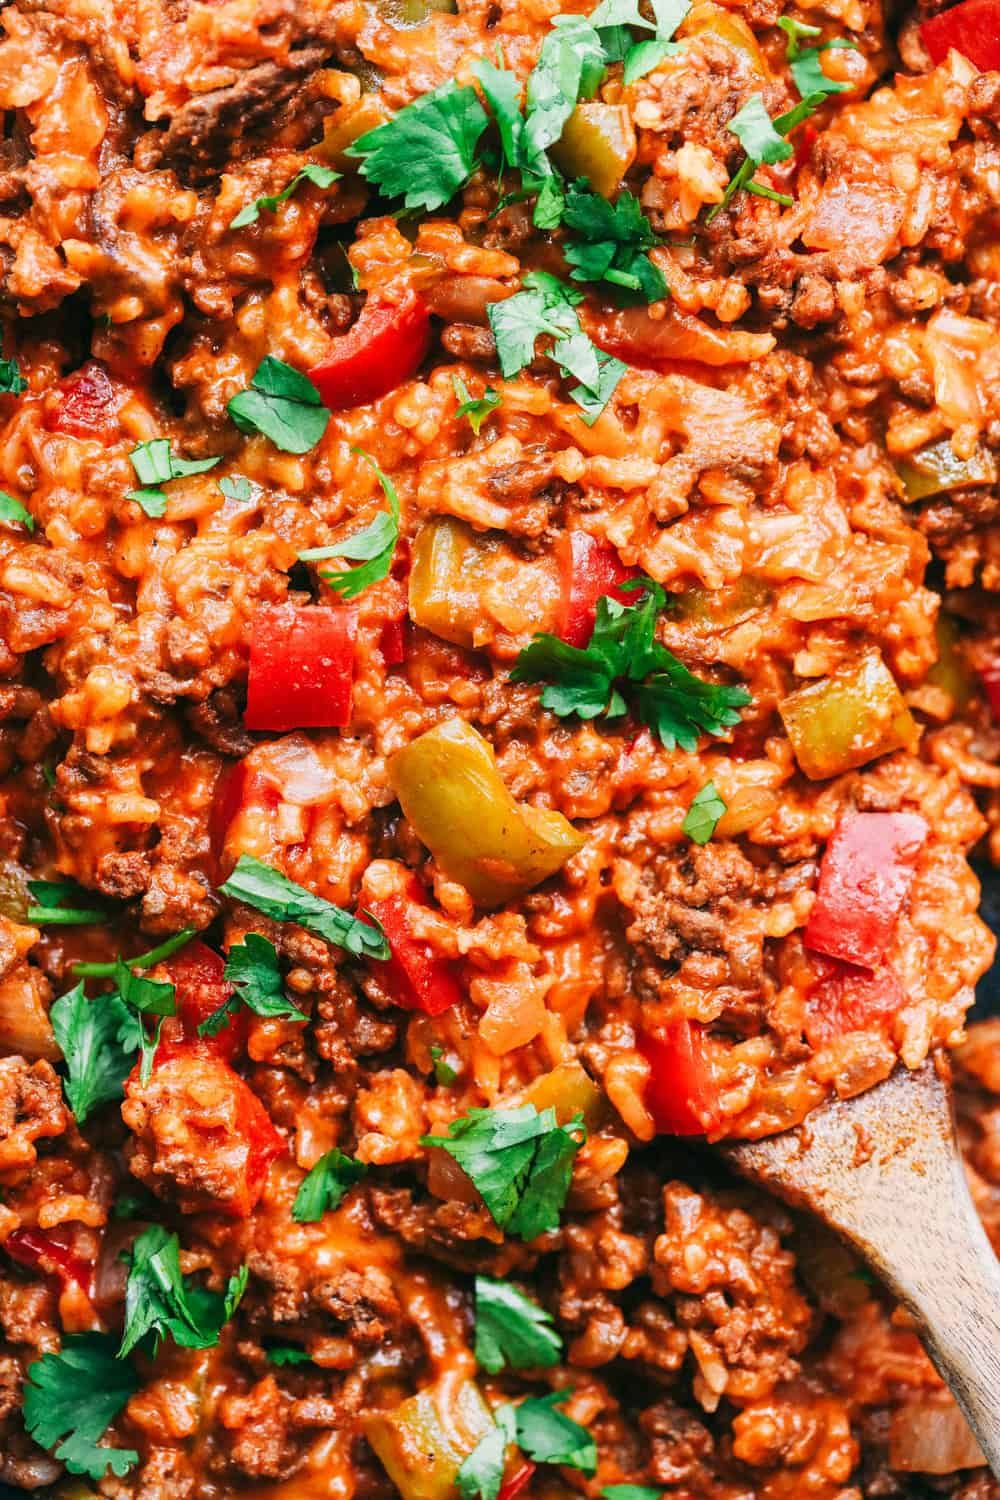 Unstuffed Pepper Skillet Has All Of The Things That You Loved About A Stuffed Pepper In An Easy T In 2020 Stuffed Peppers Unstuffed Peppers Ground Beef Recipes Skillet